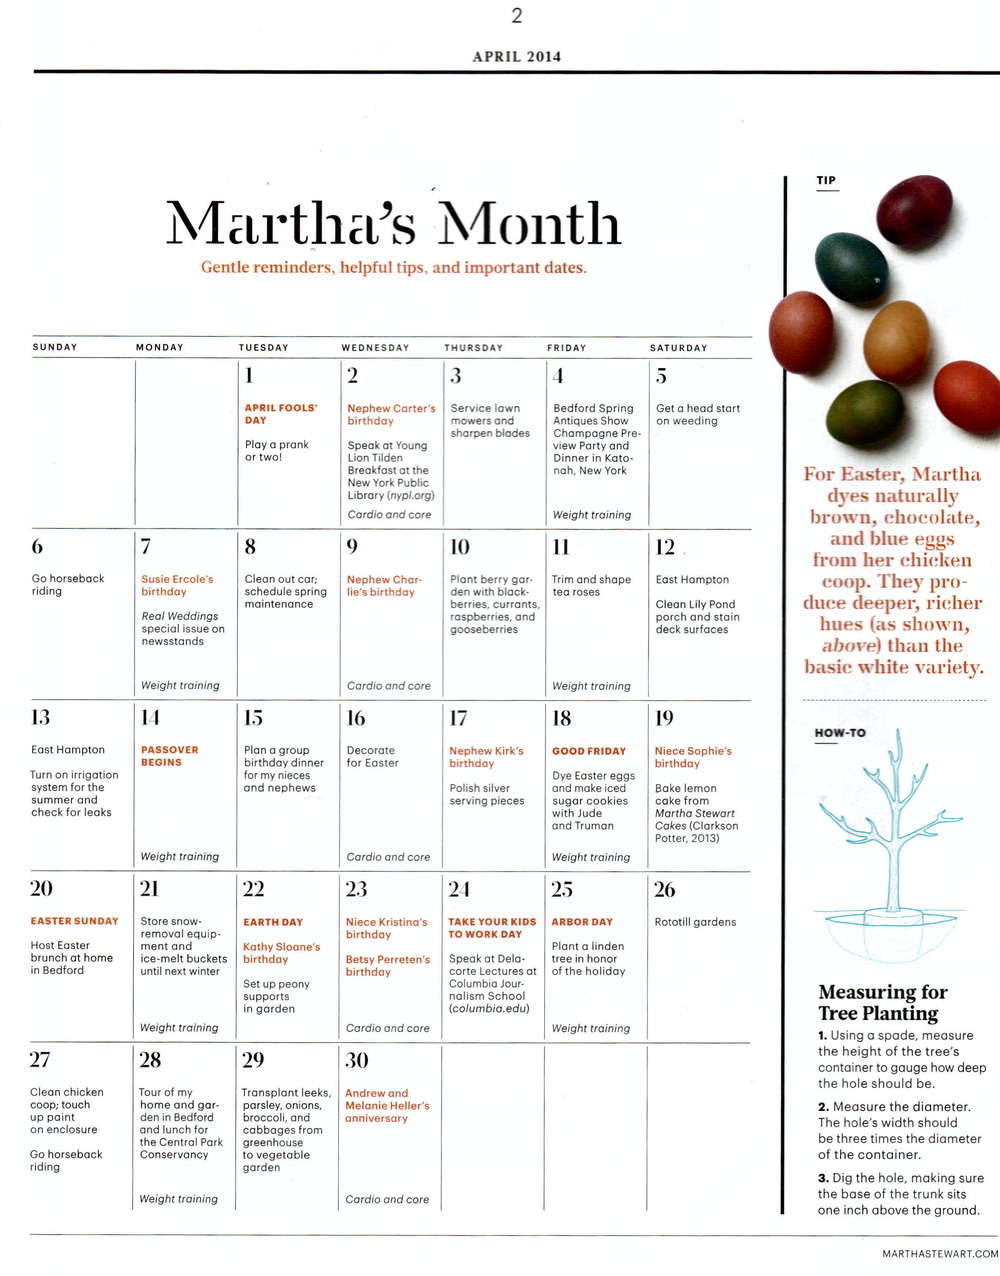 Martha Stewart Living, April 2014